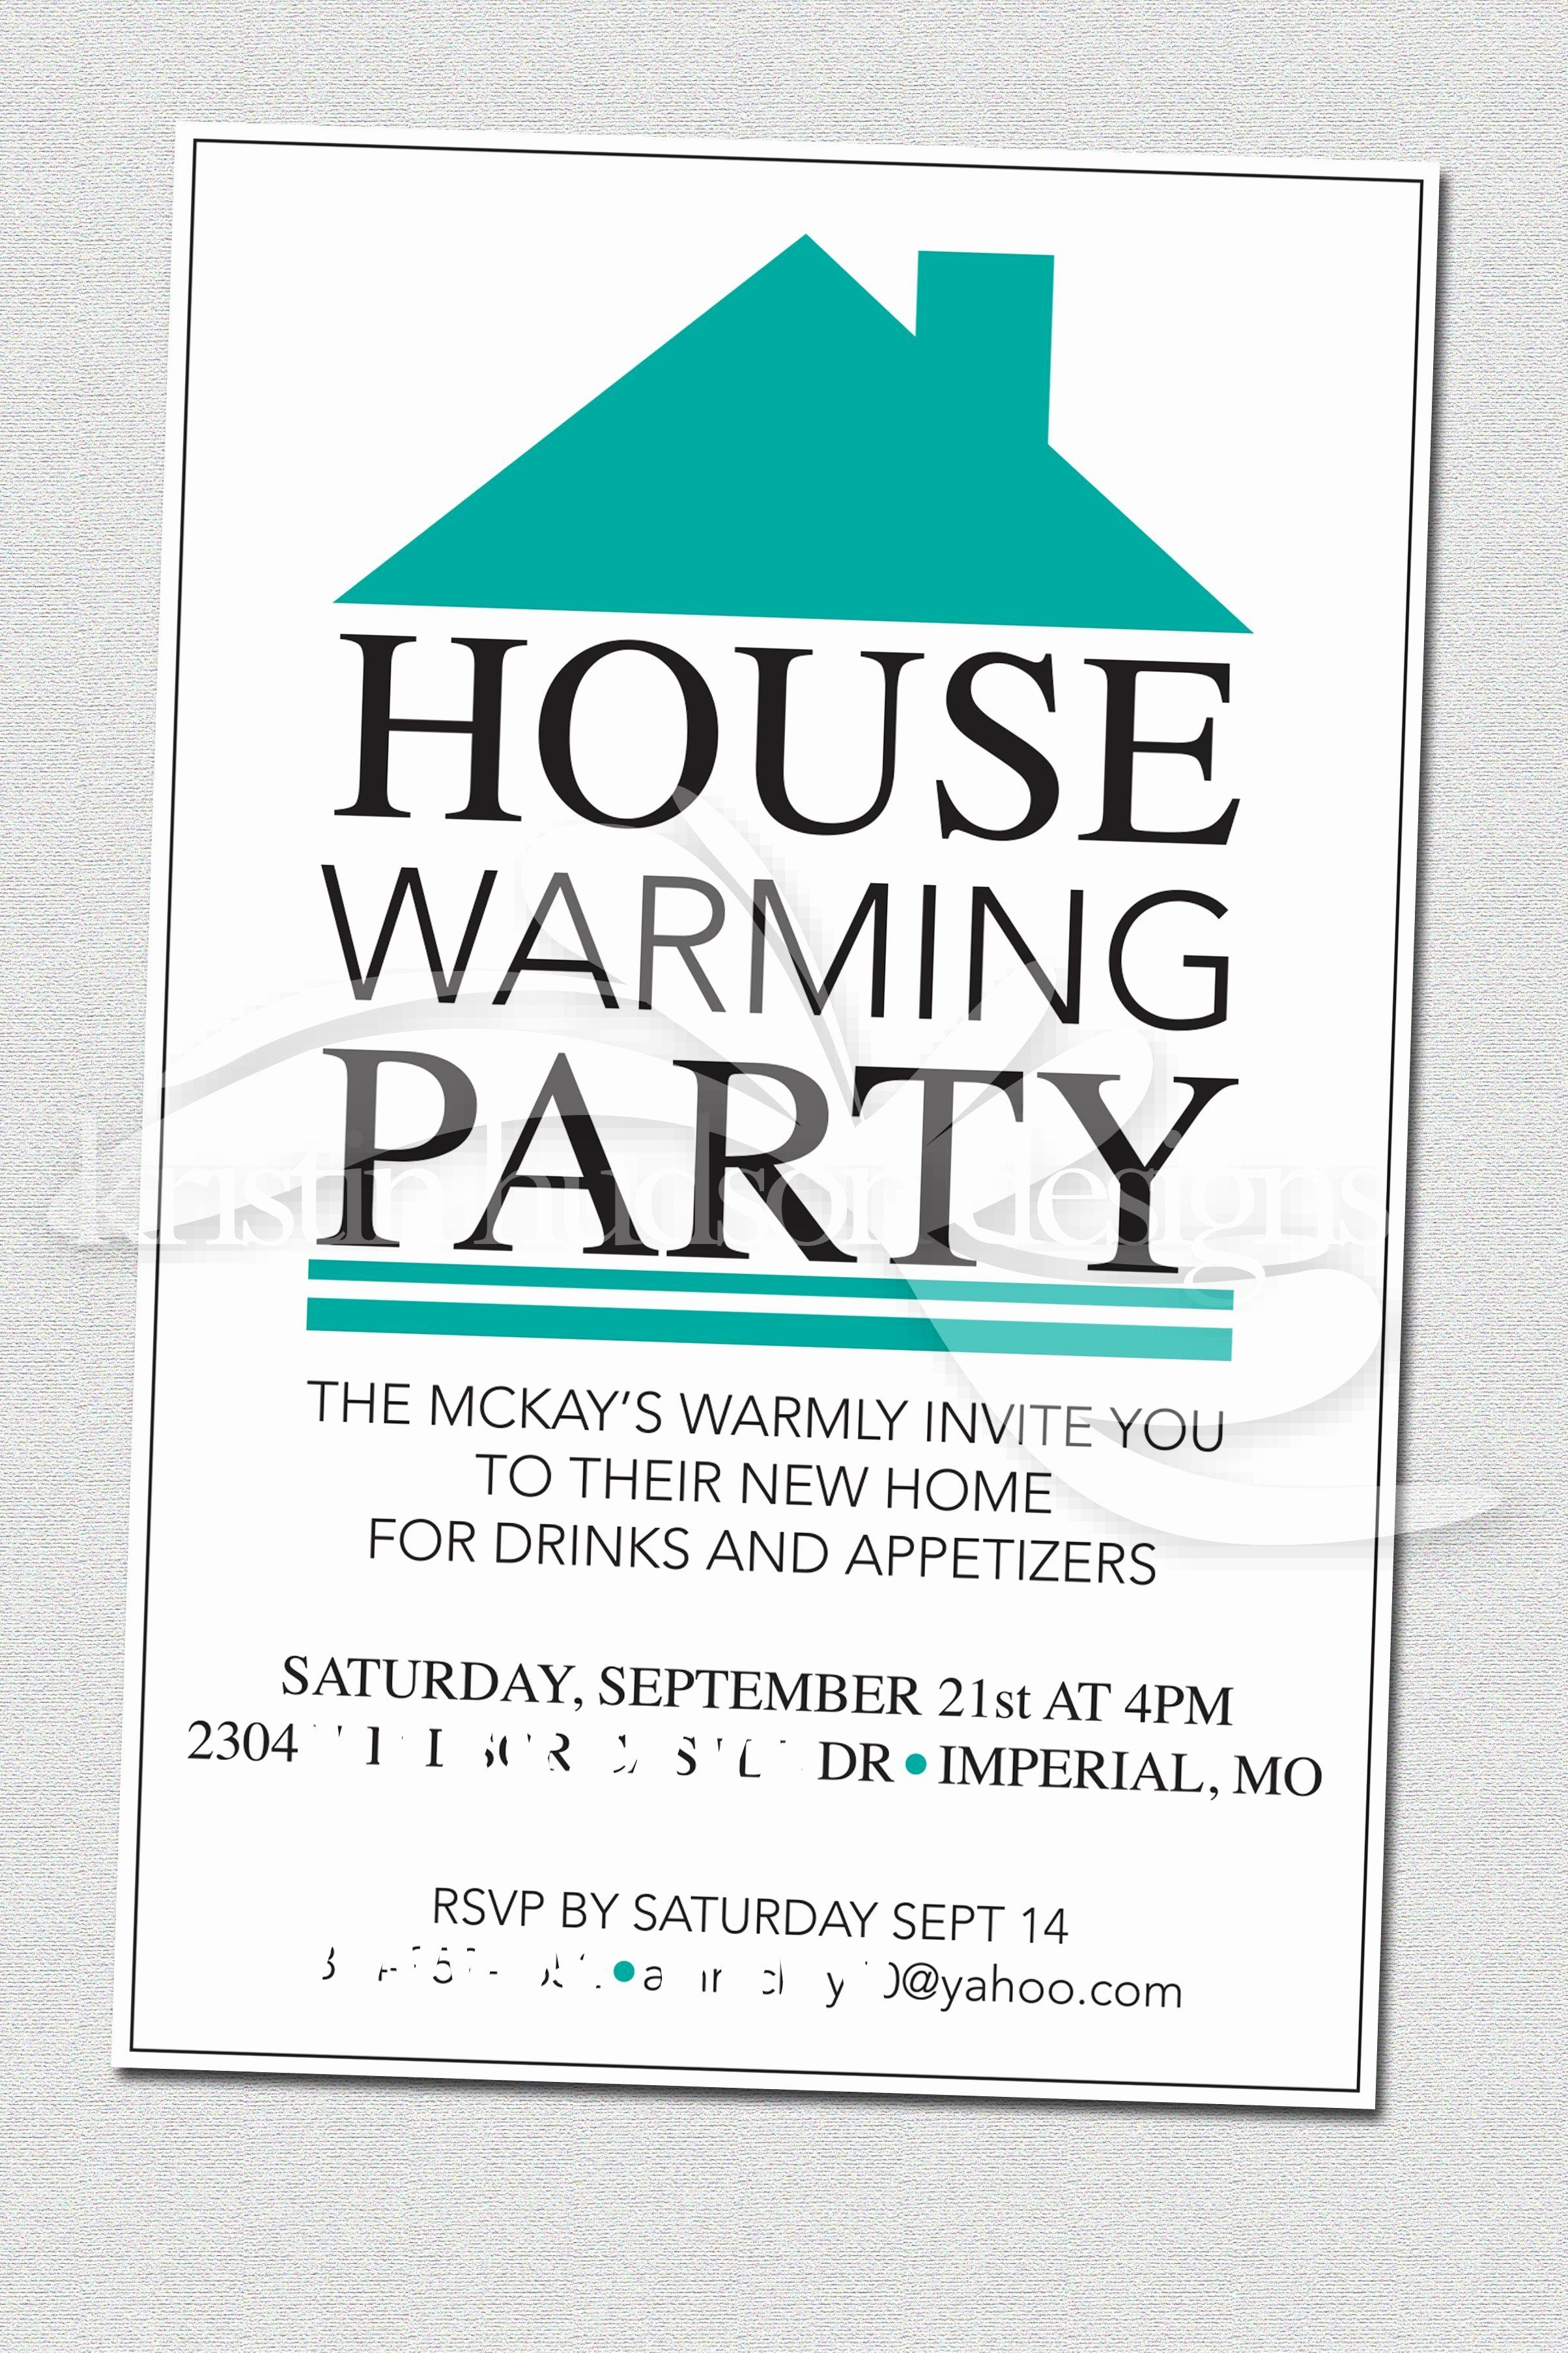 House Party Invitation Template Unique House Warming Party Invite